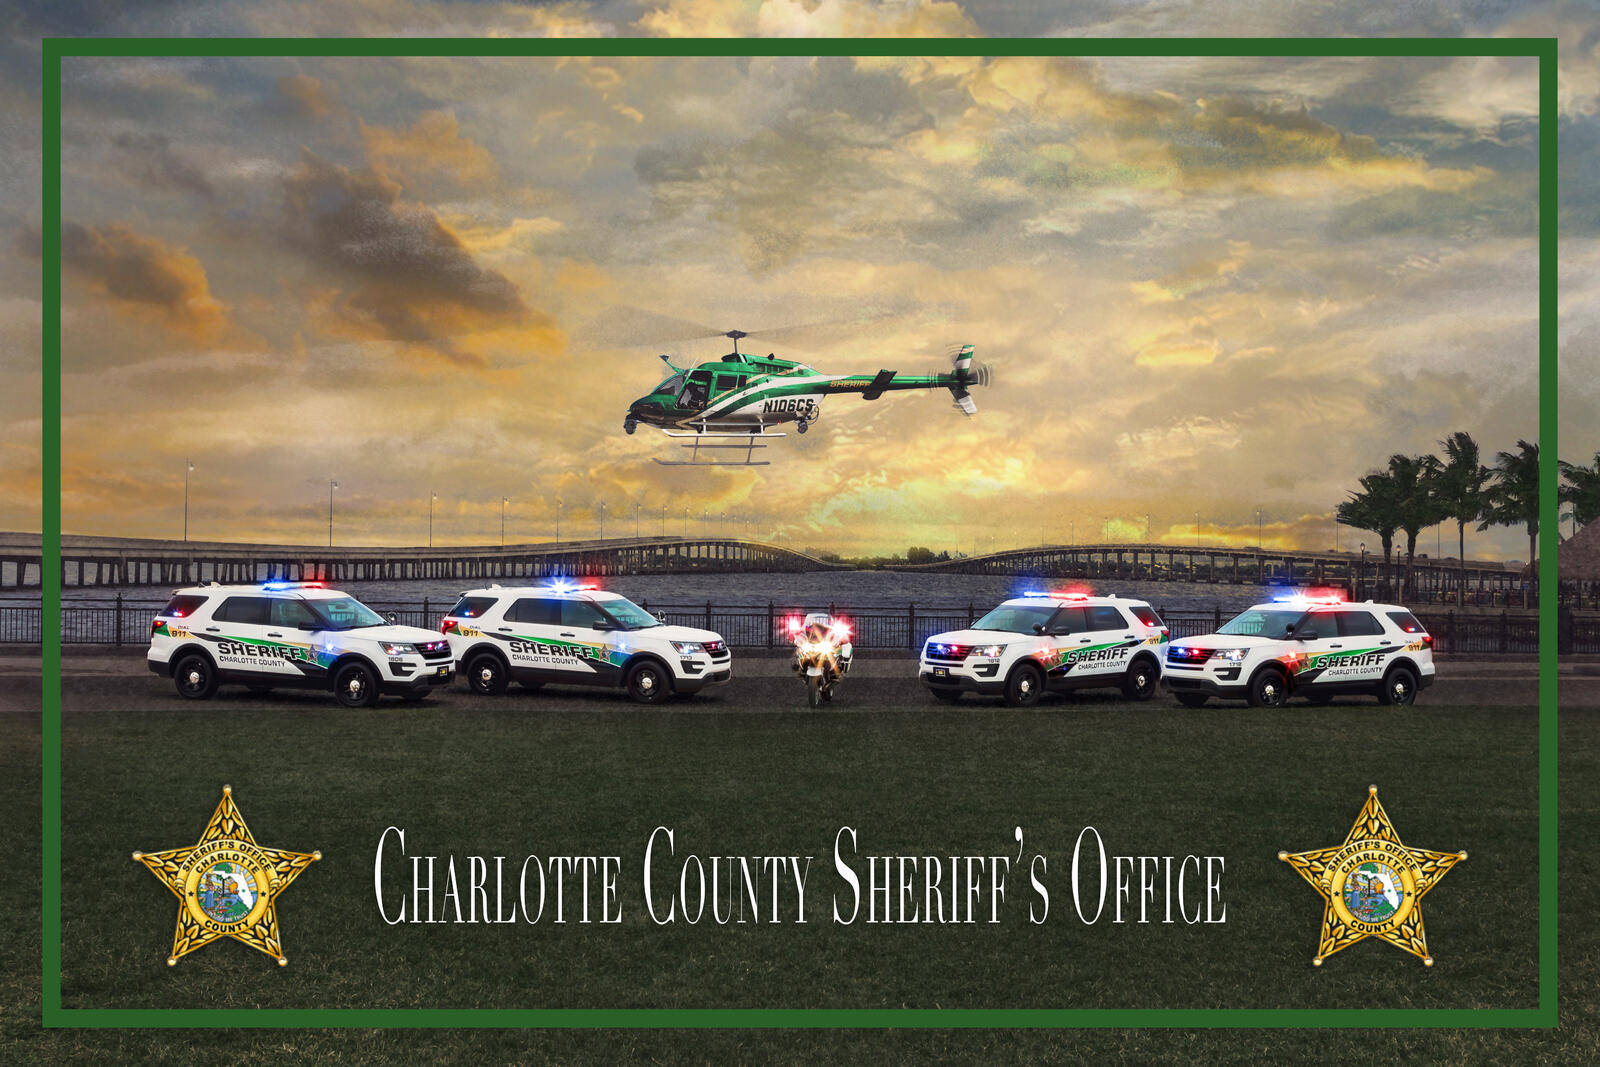 Charlotte County Sheriff's Office - 231 Crime and Safety